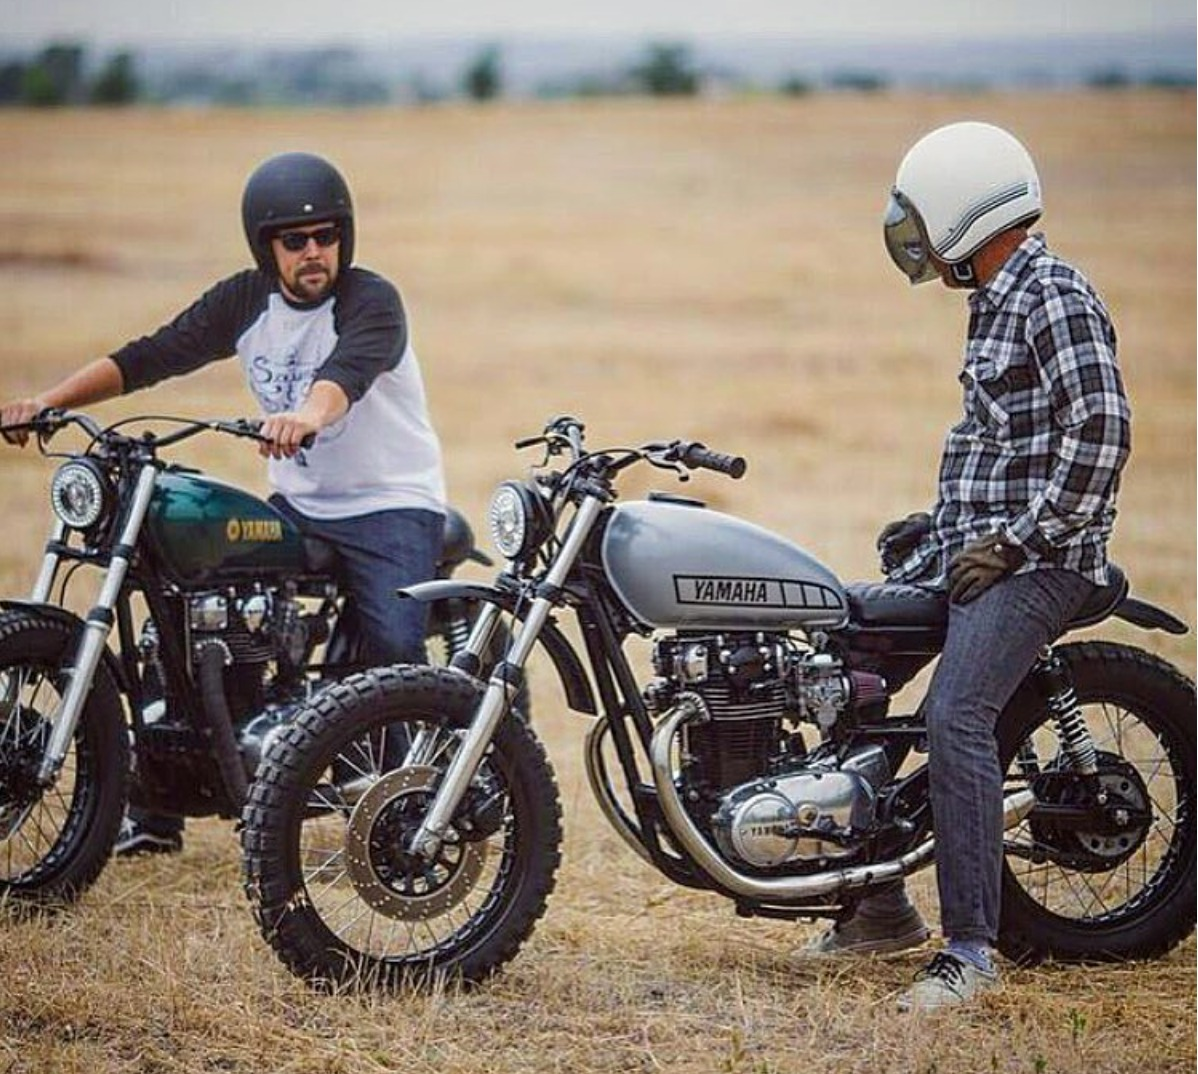 Yamaha Xs650 Scrambler By Therapy Garage Bikebound Bmw R80gs Wiring Diagram The Only Thing Better Than An Is Two Of Them